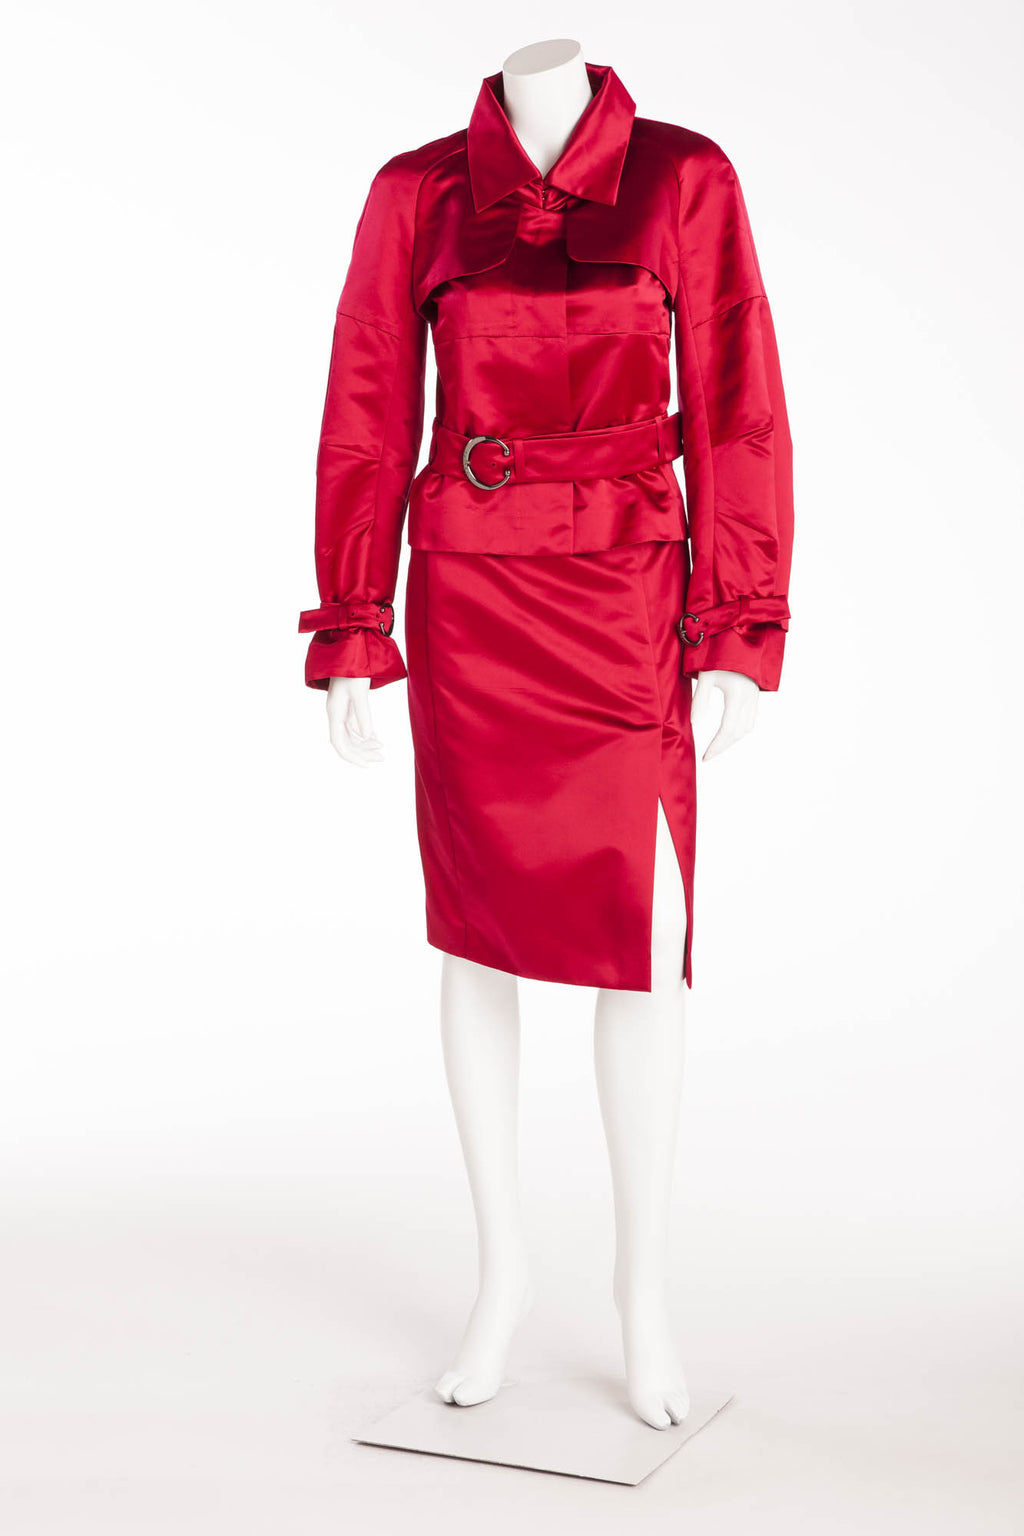 Celine - 2PC Red Satin Blazer with Belt and Skirt - FR 38